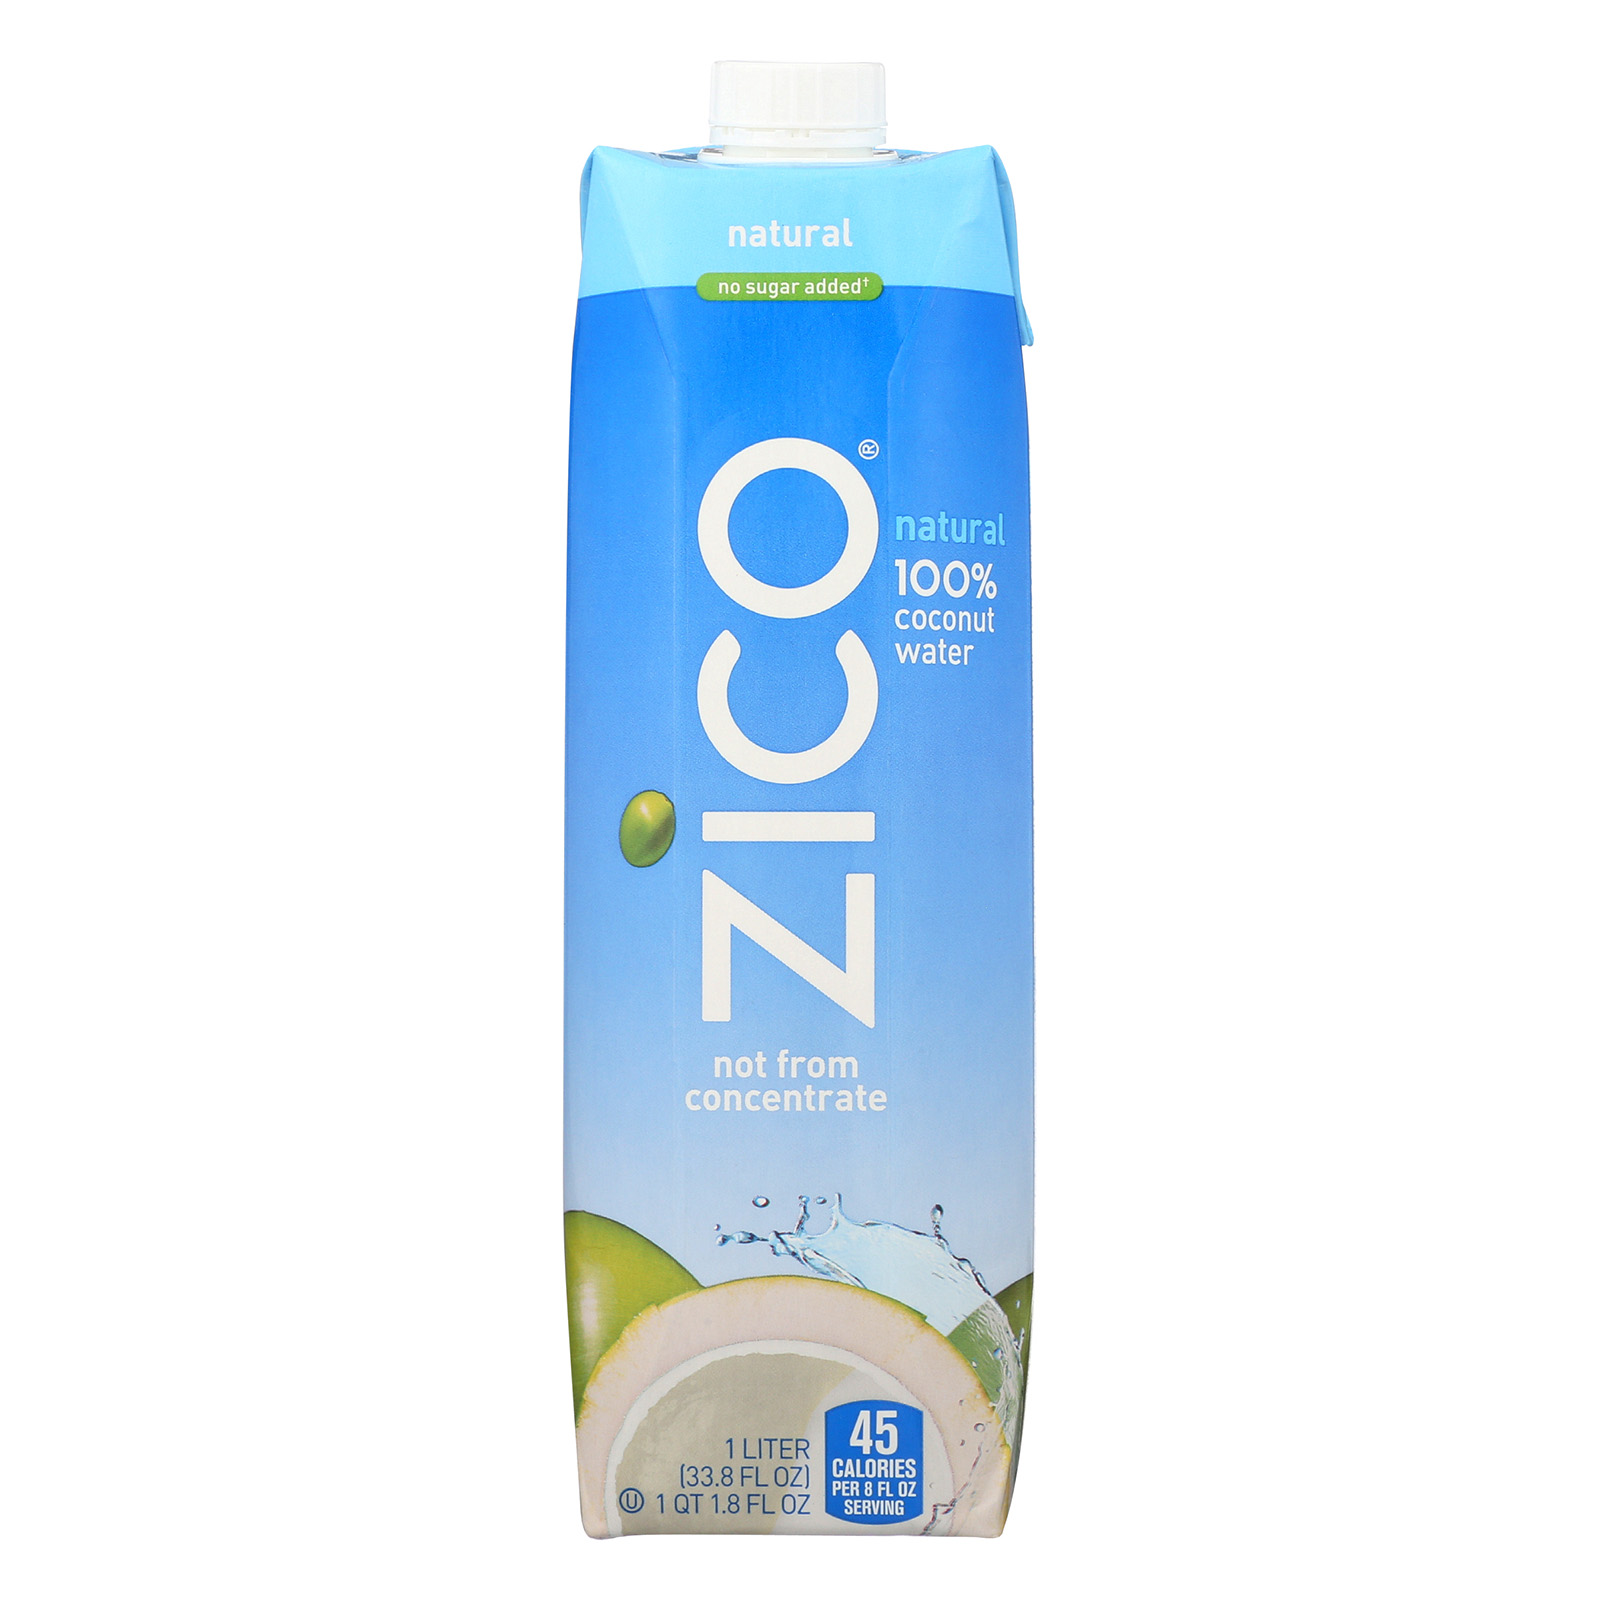 Zico Coconut Water Coconut Water - Natural - Pack of 12 -...